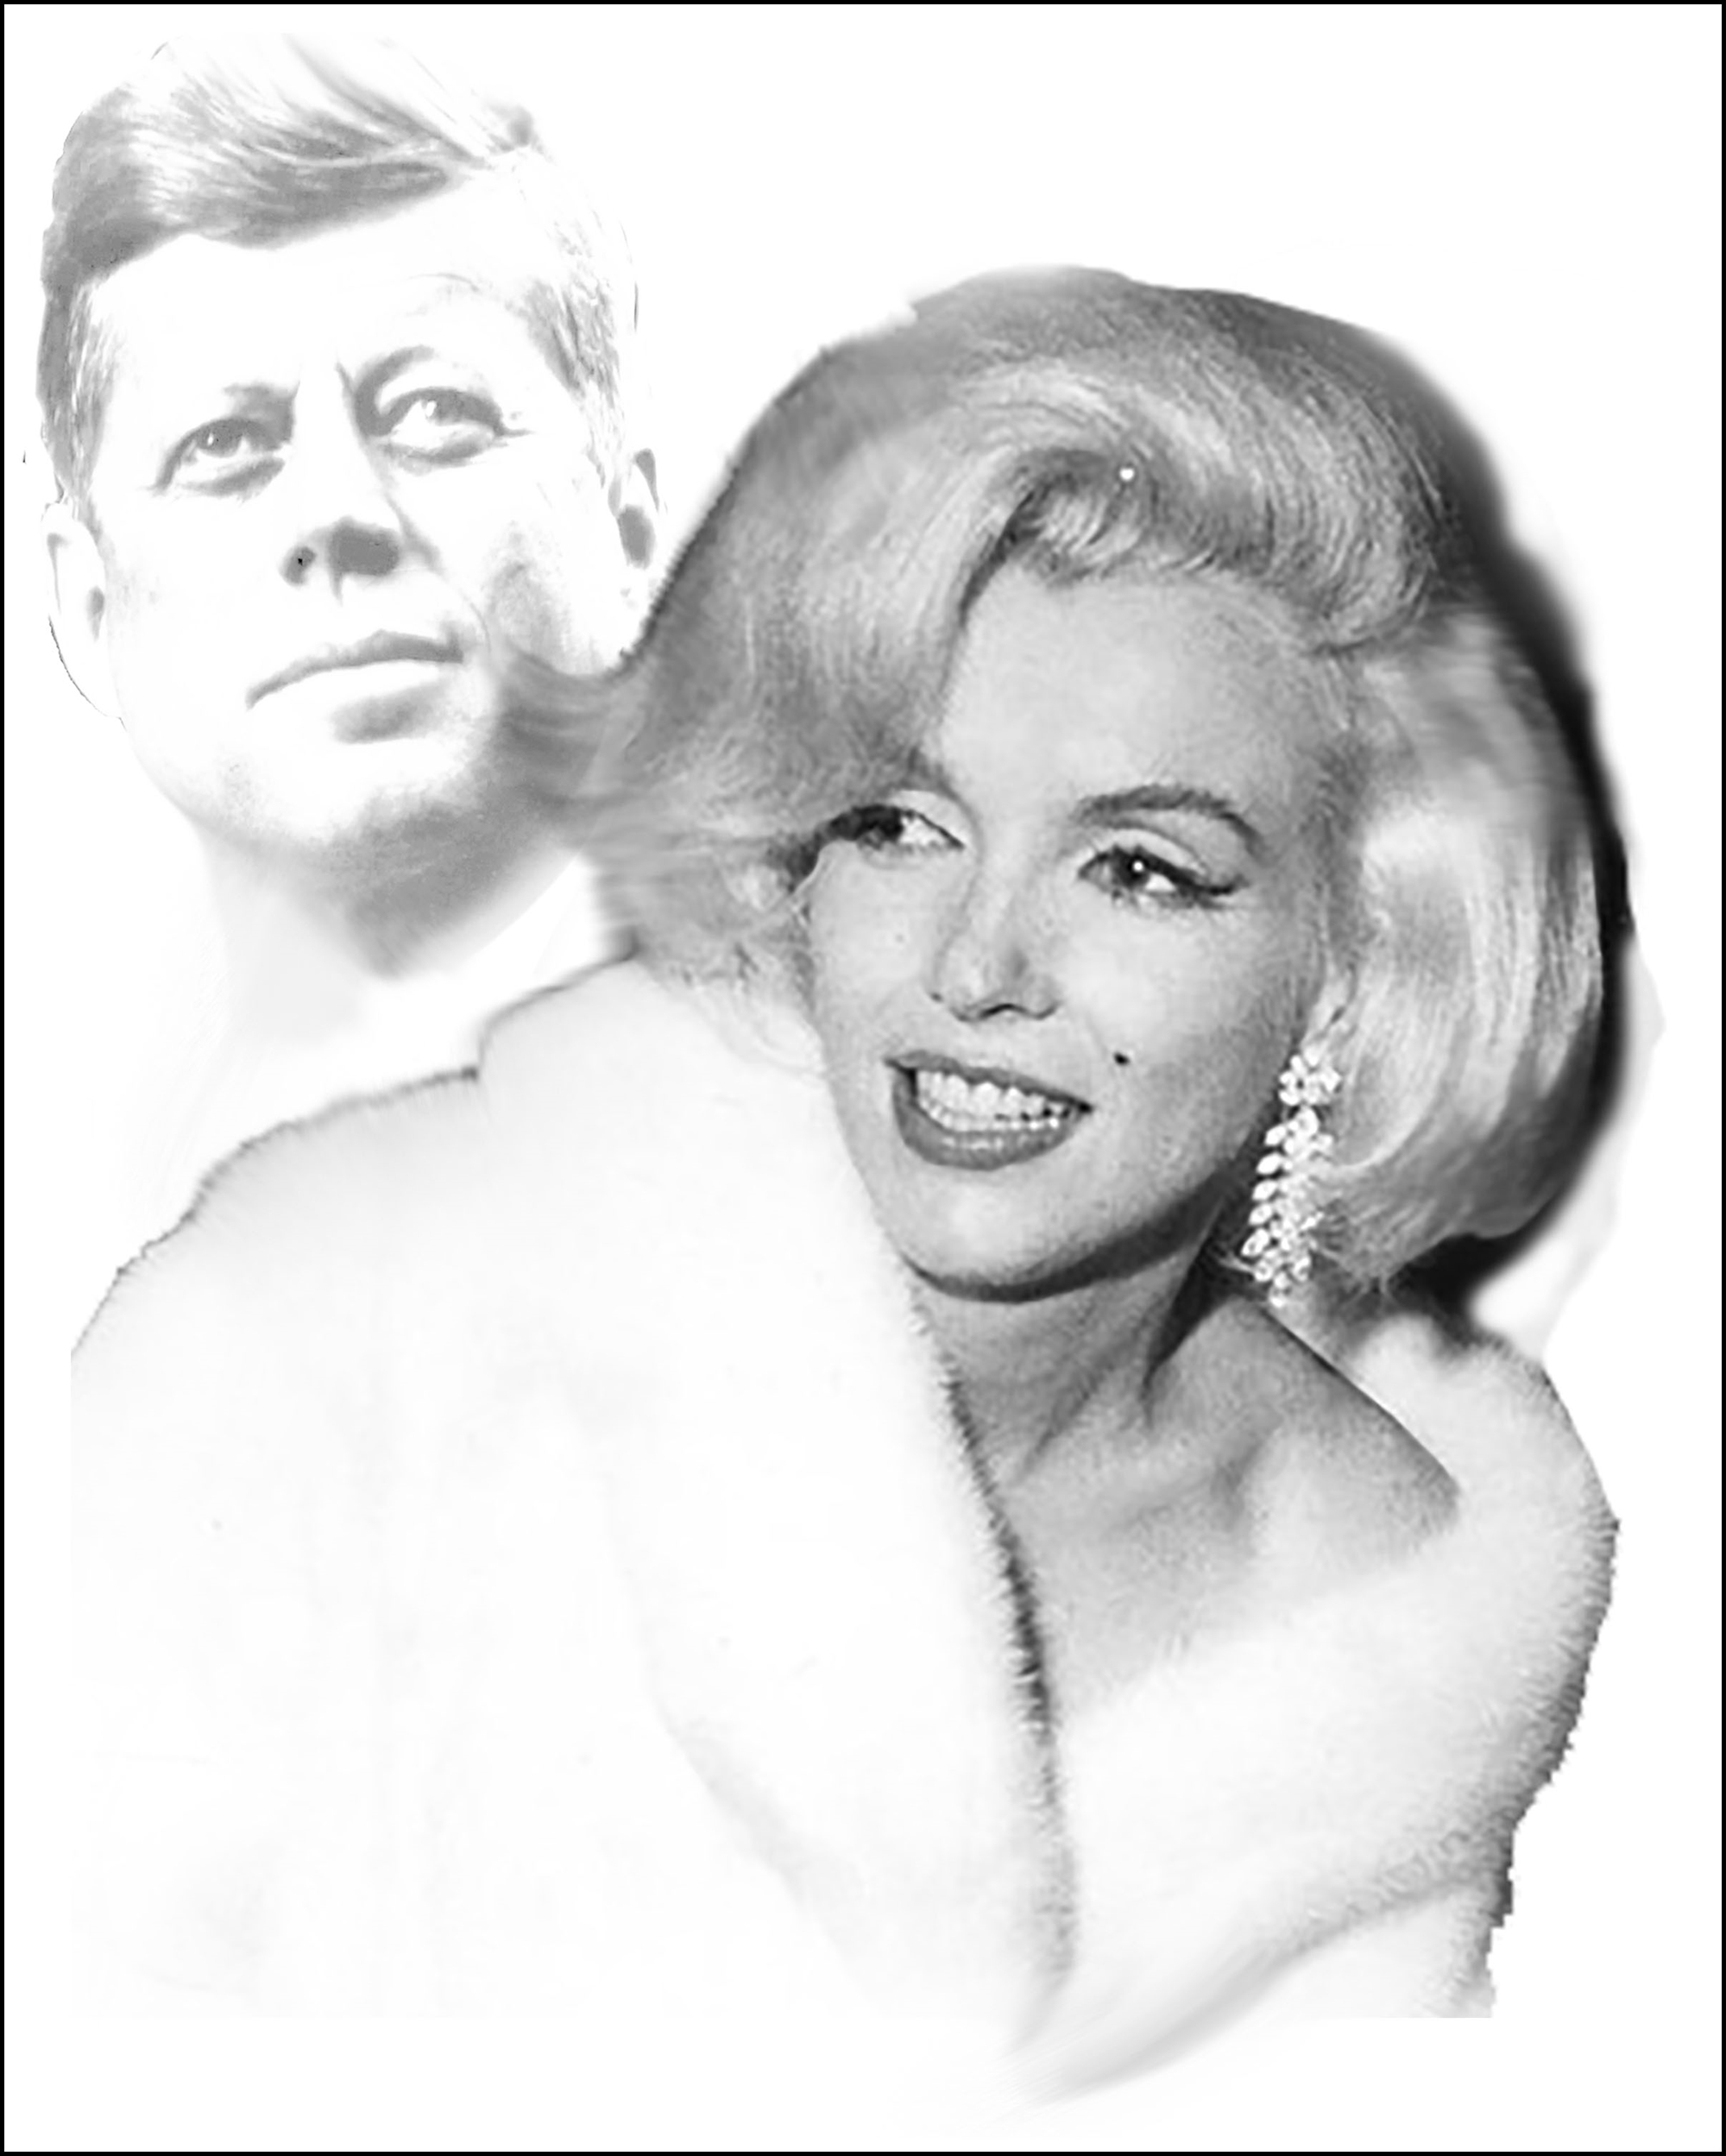 Marilyn and JFK Available as Commission- Size TBD by Bill Mack Hollywood Sign